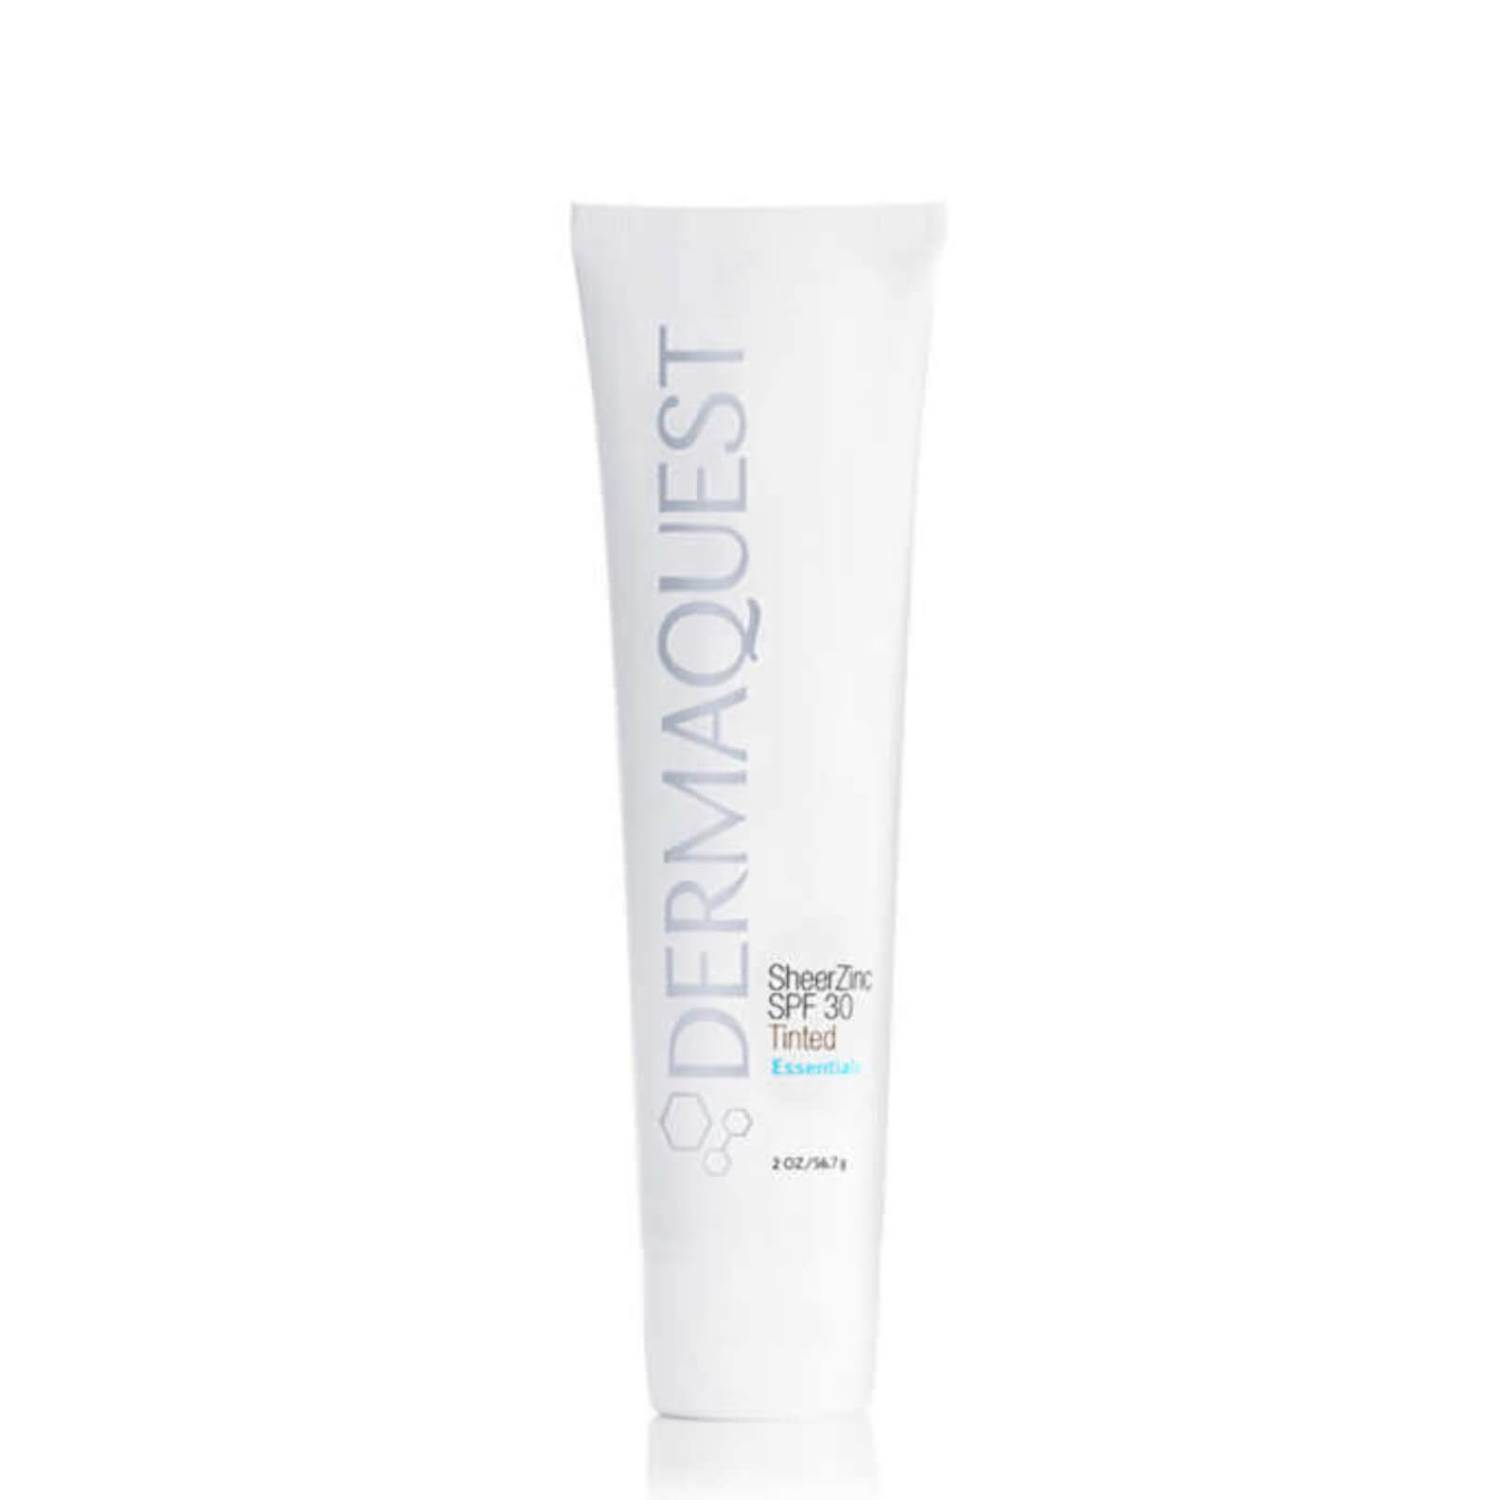 Dermaquest Sheer Zinc SPF30 Tinted (70 PCT OFF RETAIL